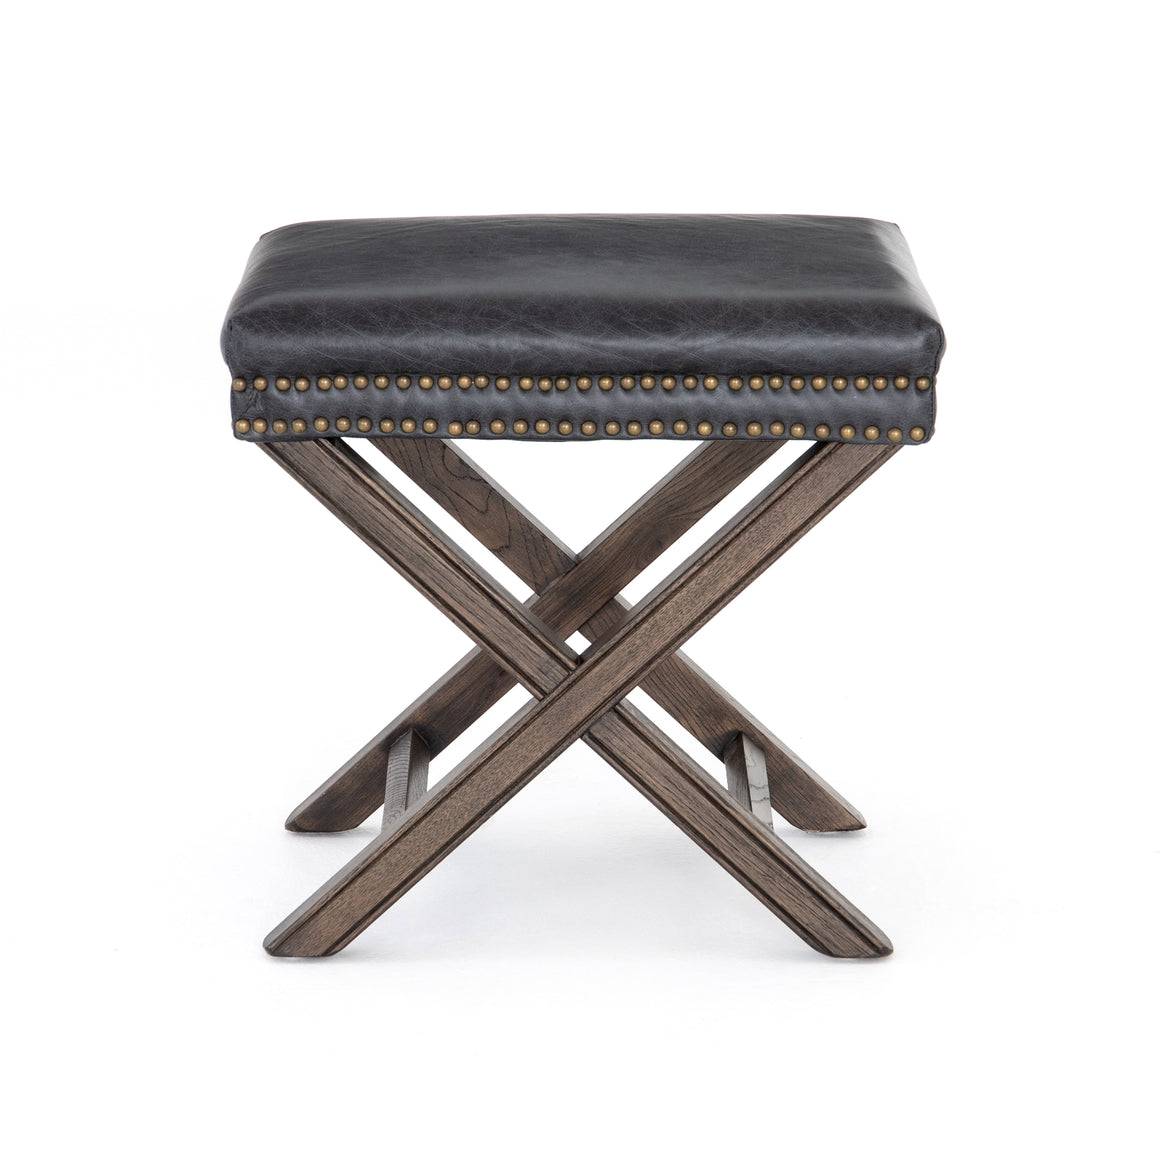 Elyse X Frame Ottoman - Smoke Brown Leather